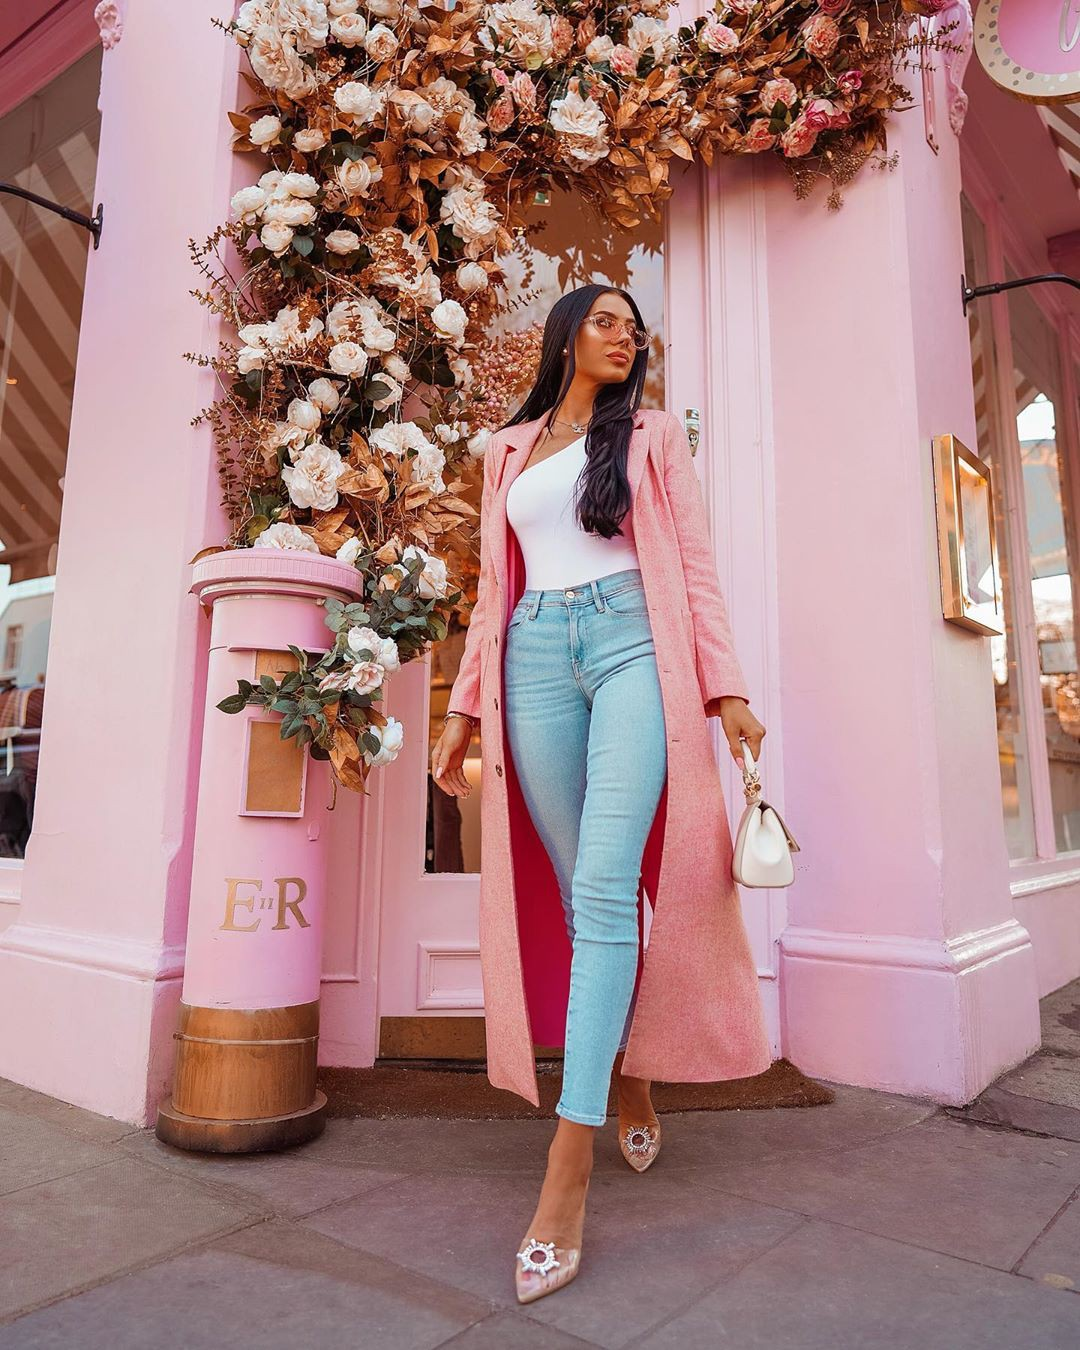 White and pink jeans, legs photo, attire ideas